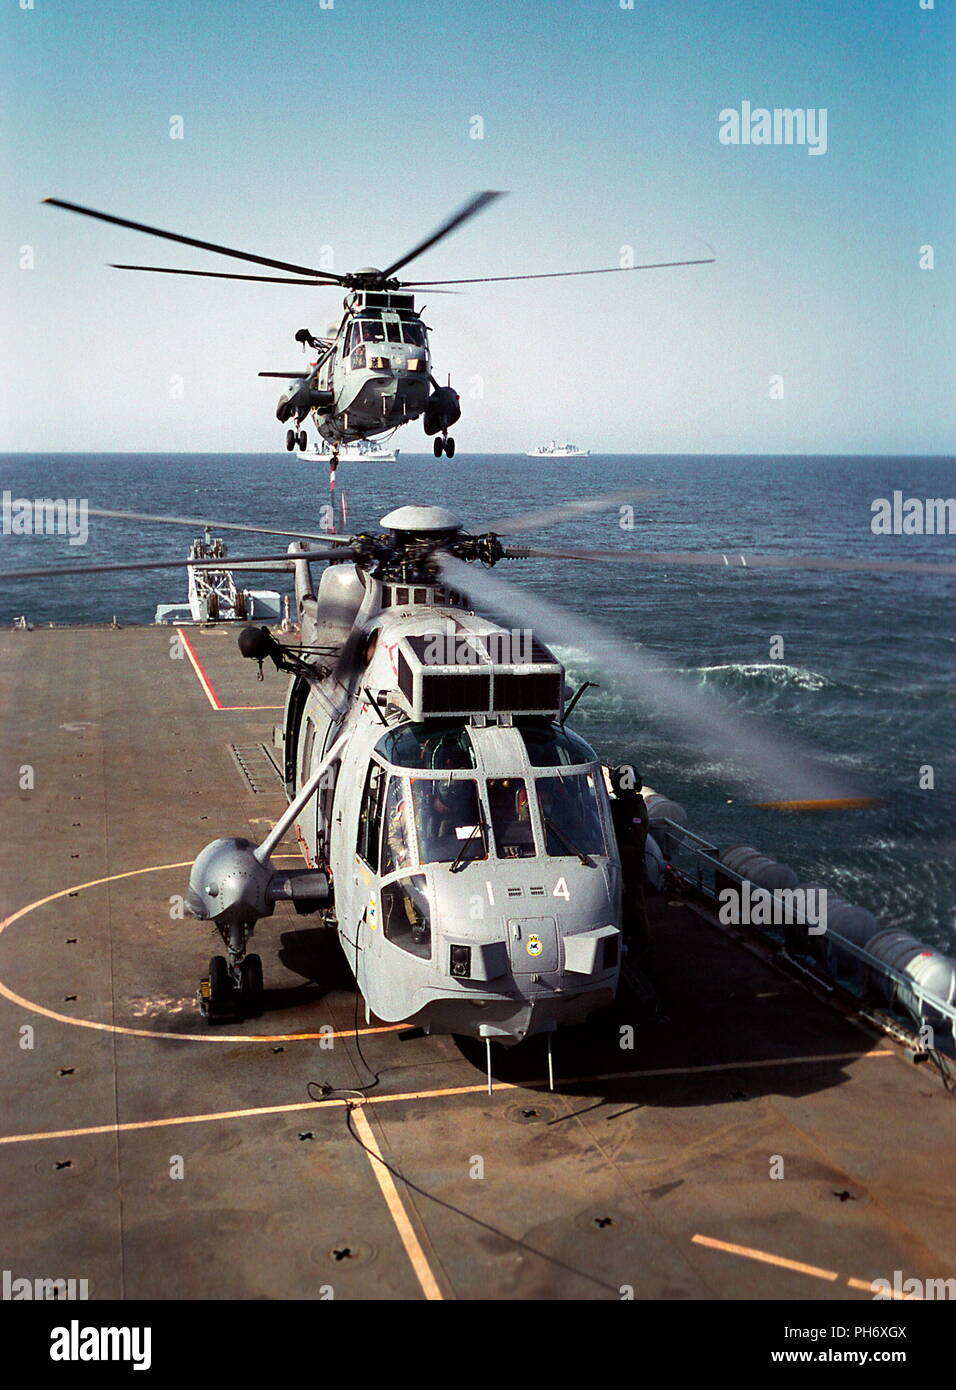 AJAXNETPHOTO. 6TH OCT 2001. OMAN. A SEA KING HELICOPTER FROM ROYAL NAVAL AIR SQUADRON 845 LIFTS OFF FROM THE DECK OF HMS FEARLESS AS A LYNX PREPARES TO FOLLOW. PHOTO:JONATHAN EASTLAND/AJAXREF:CD/SS/SH1-6(OMA-18) Stock Photo